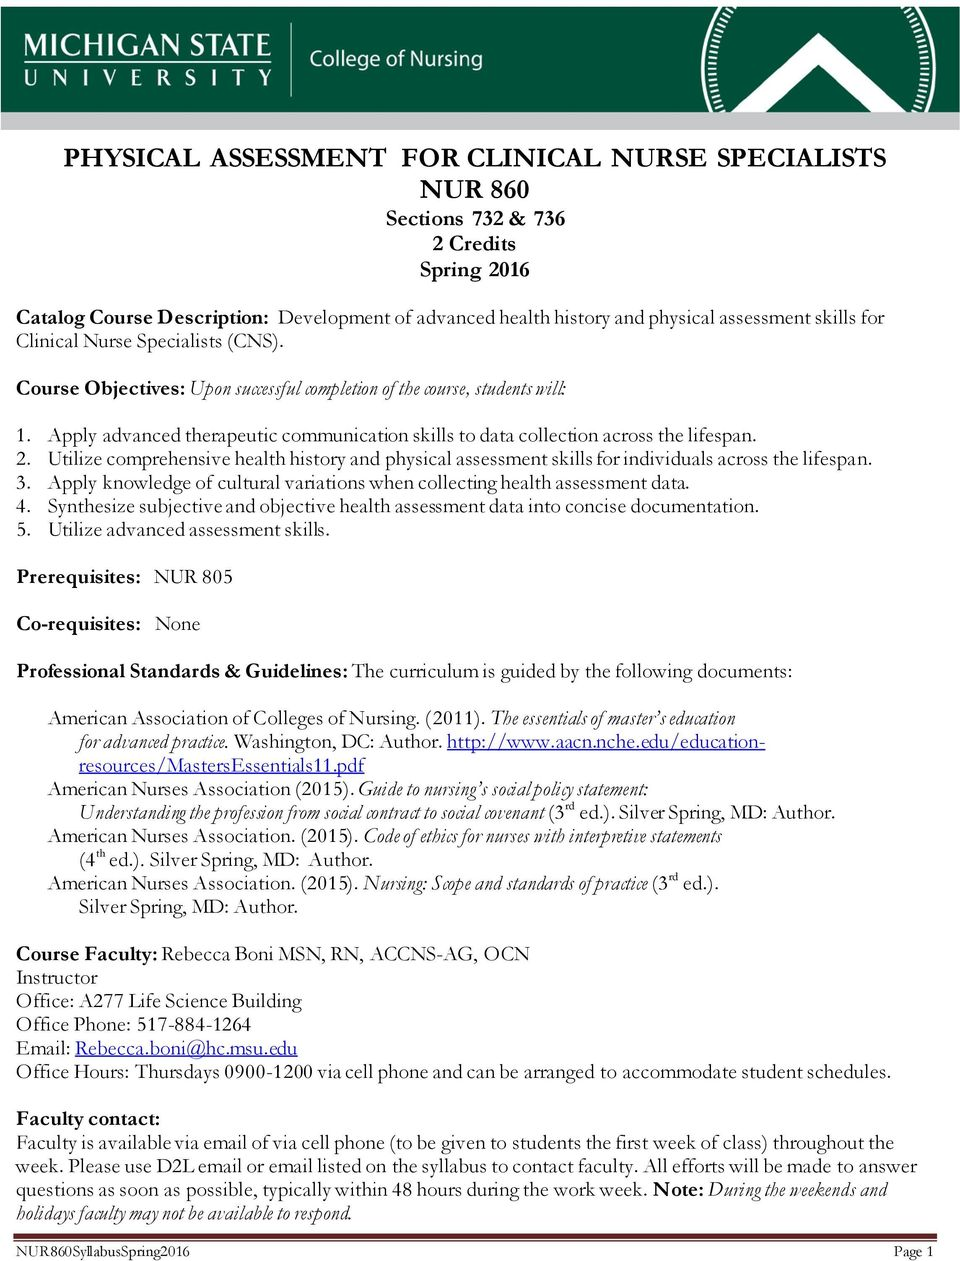 PHYSICAL ASSESSMENT FOR CLINICAL NURSE SPECIALISTS NUR 860